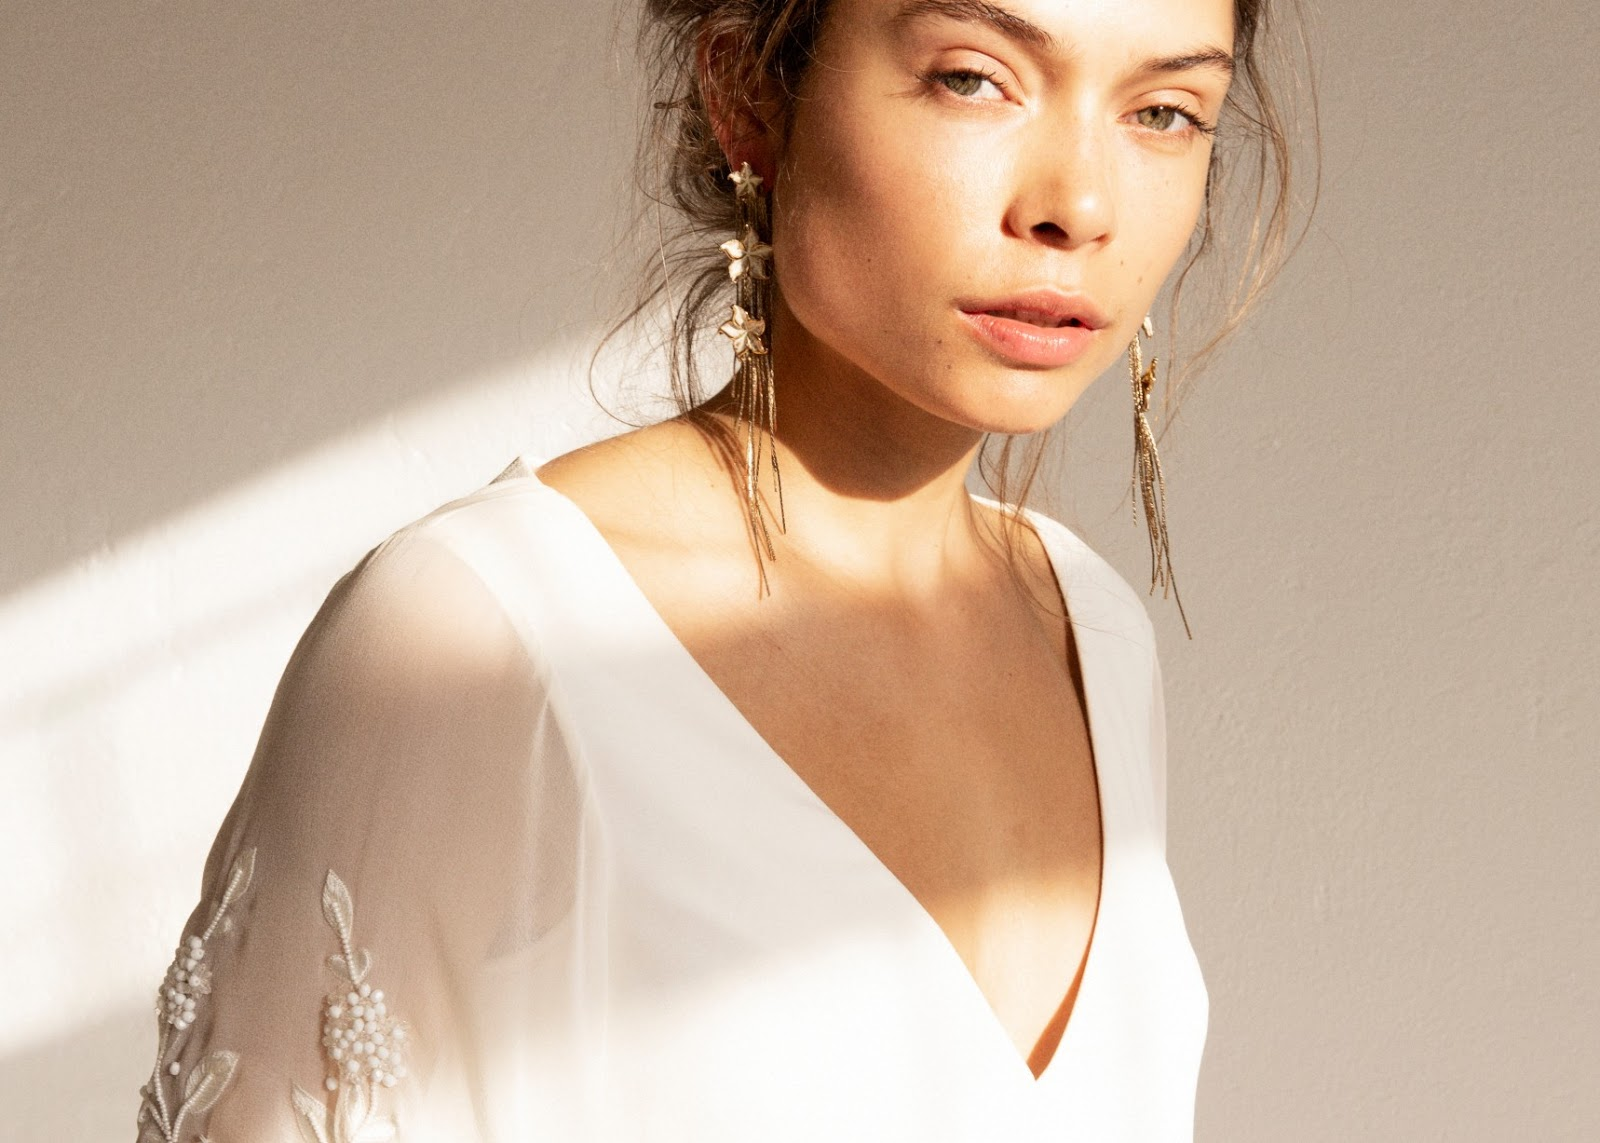 BO & LUCA INTERVIEW | WEDDING GOWNS FOR THE DARING ROMANTIC SYDNEY